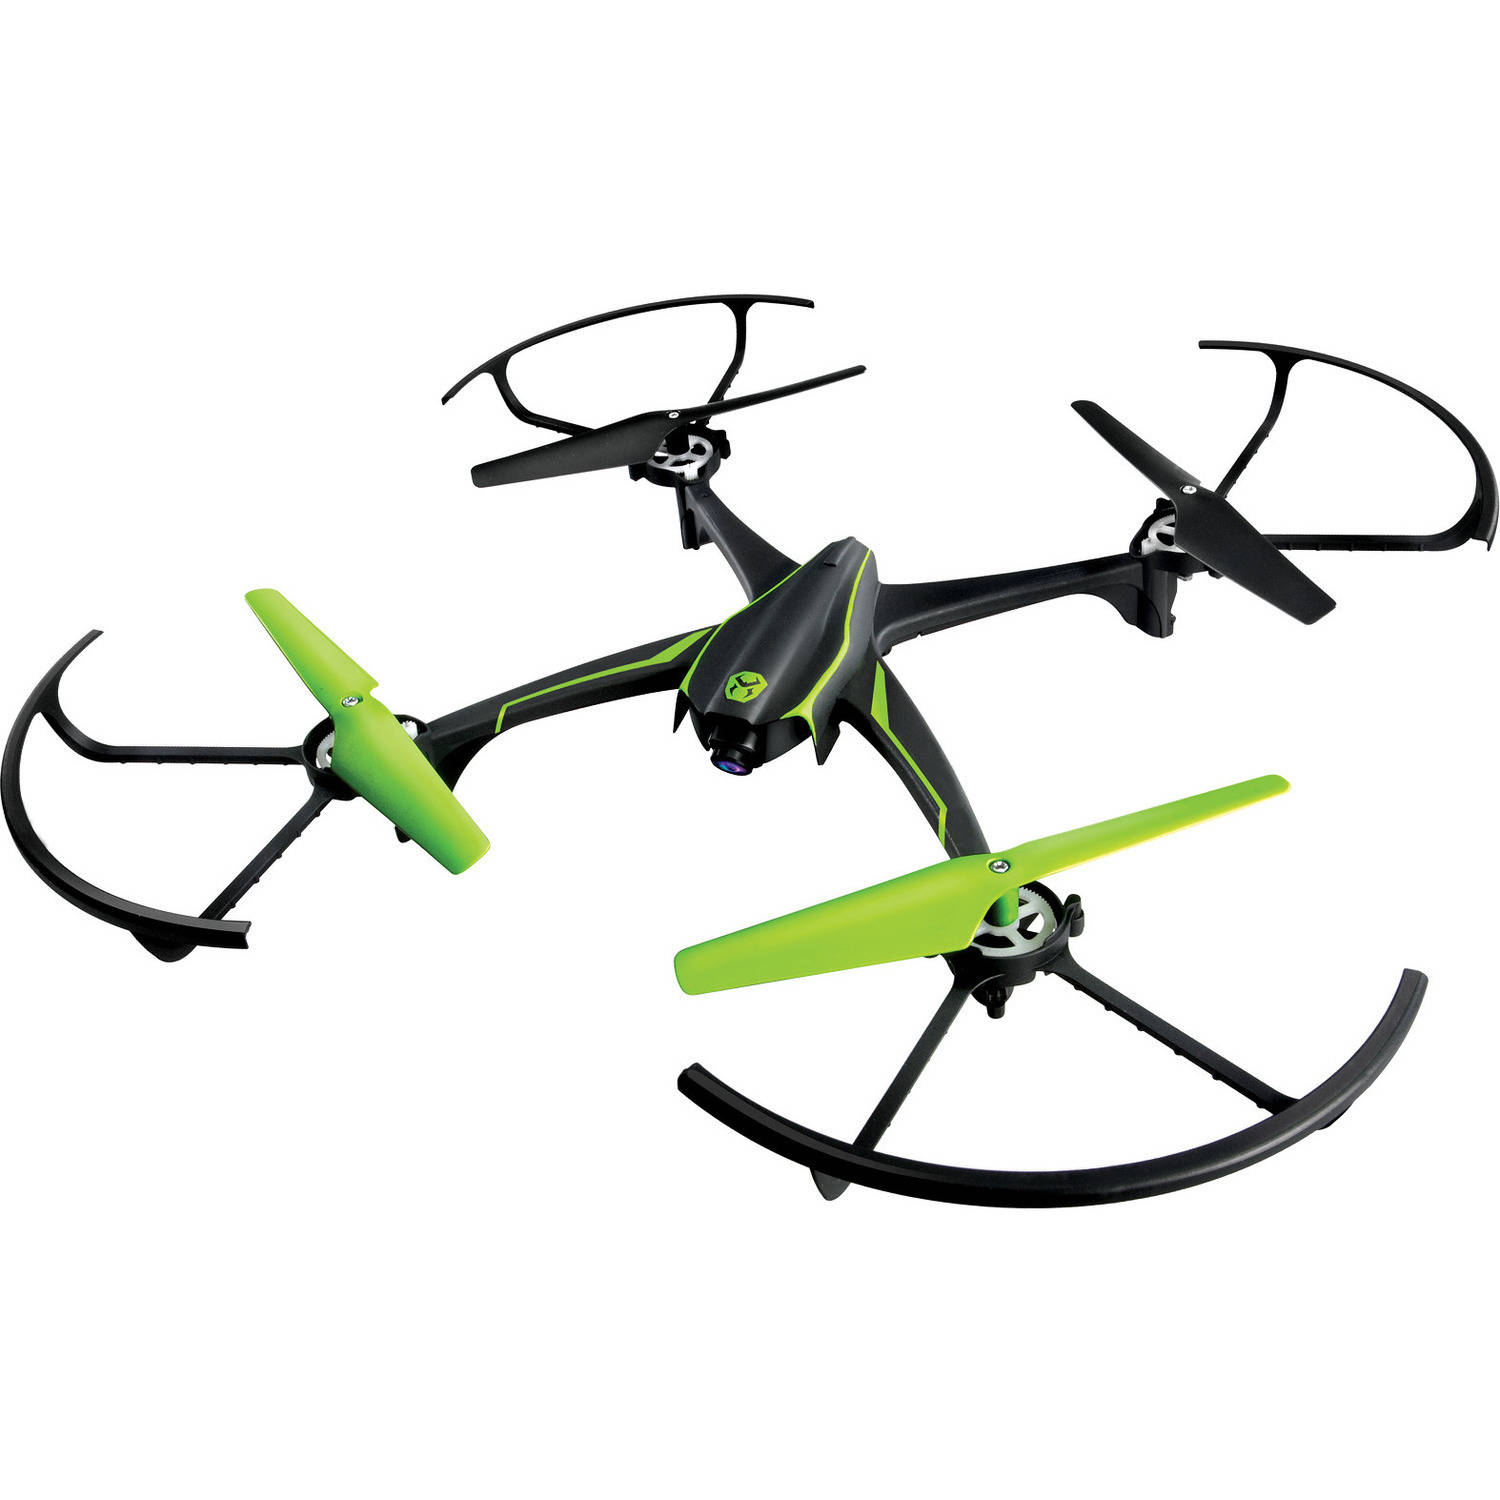 db380545 cc54 4679 aad7 8c56cdacc4d4_1.8b069abaa3807bcdf08c985123a70412 sky viper 2016 v2400 hd streaming video drone walmart com Drone with Camera at soozxer.org